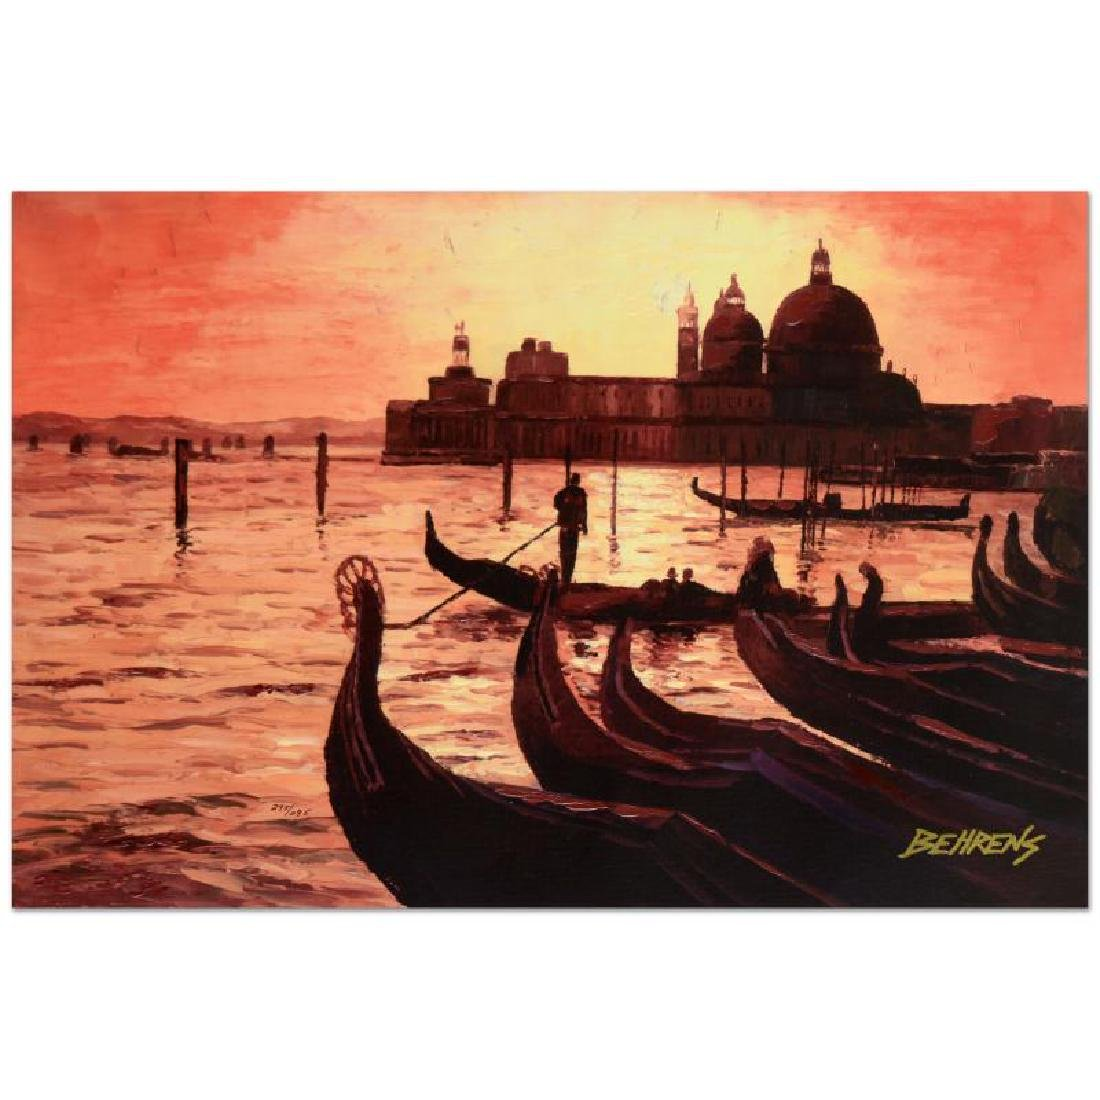 Sunset on the Grand Canal 3 by Behrens (1933-2014)